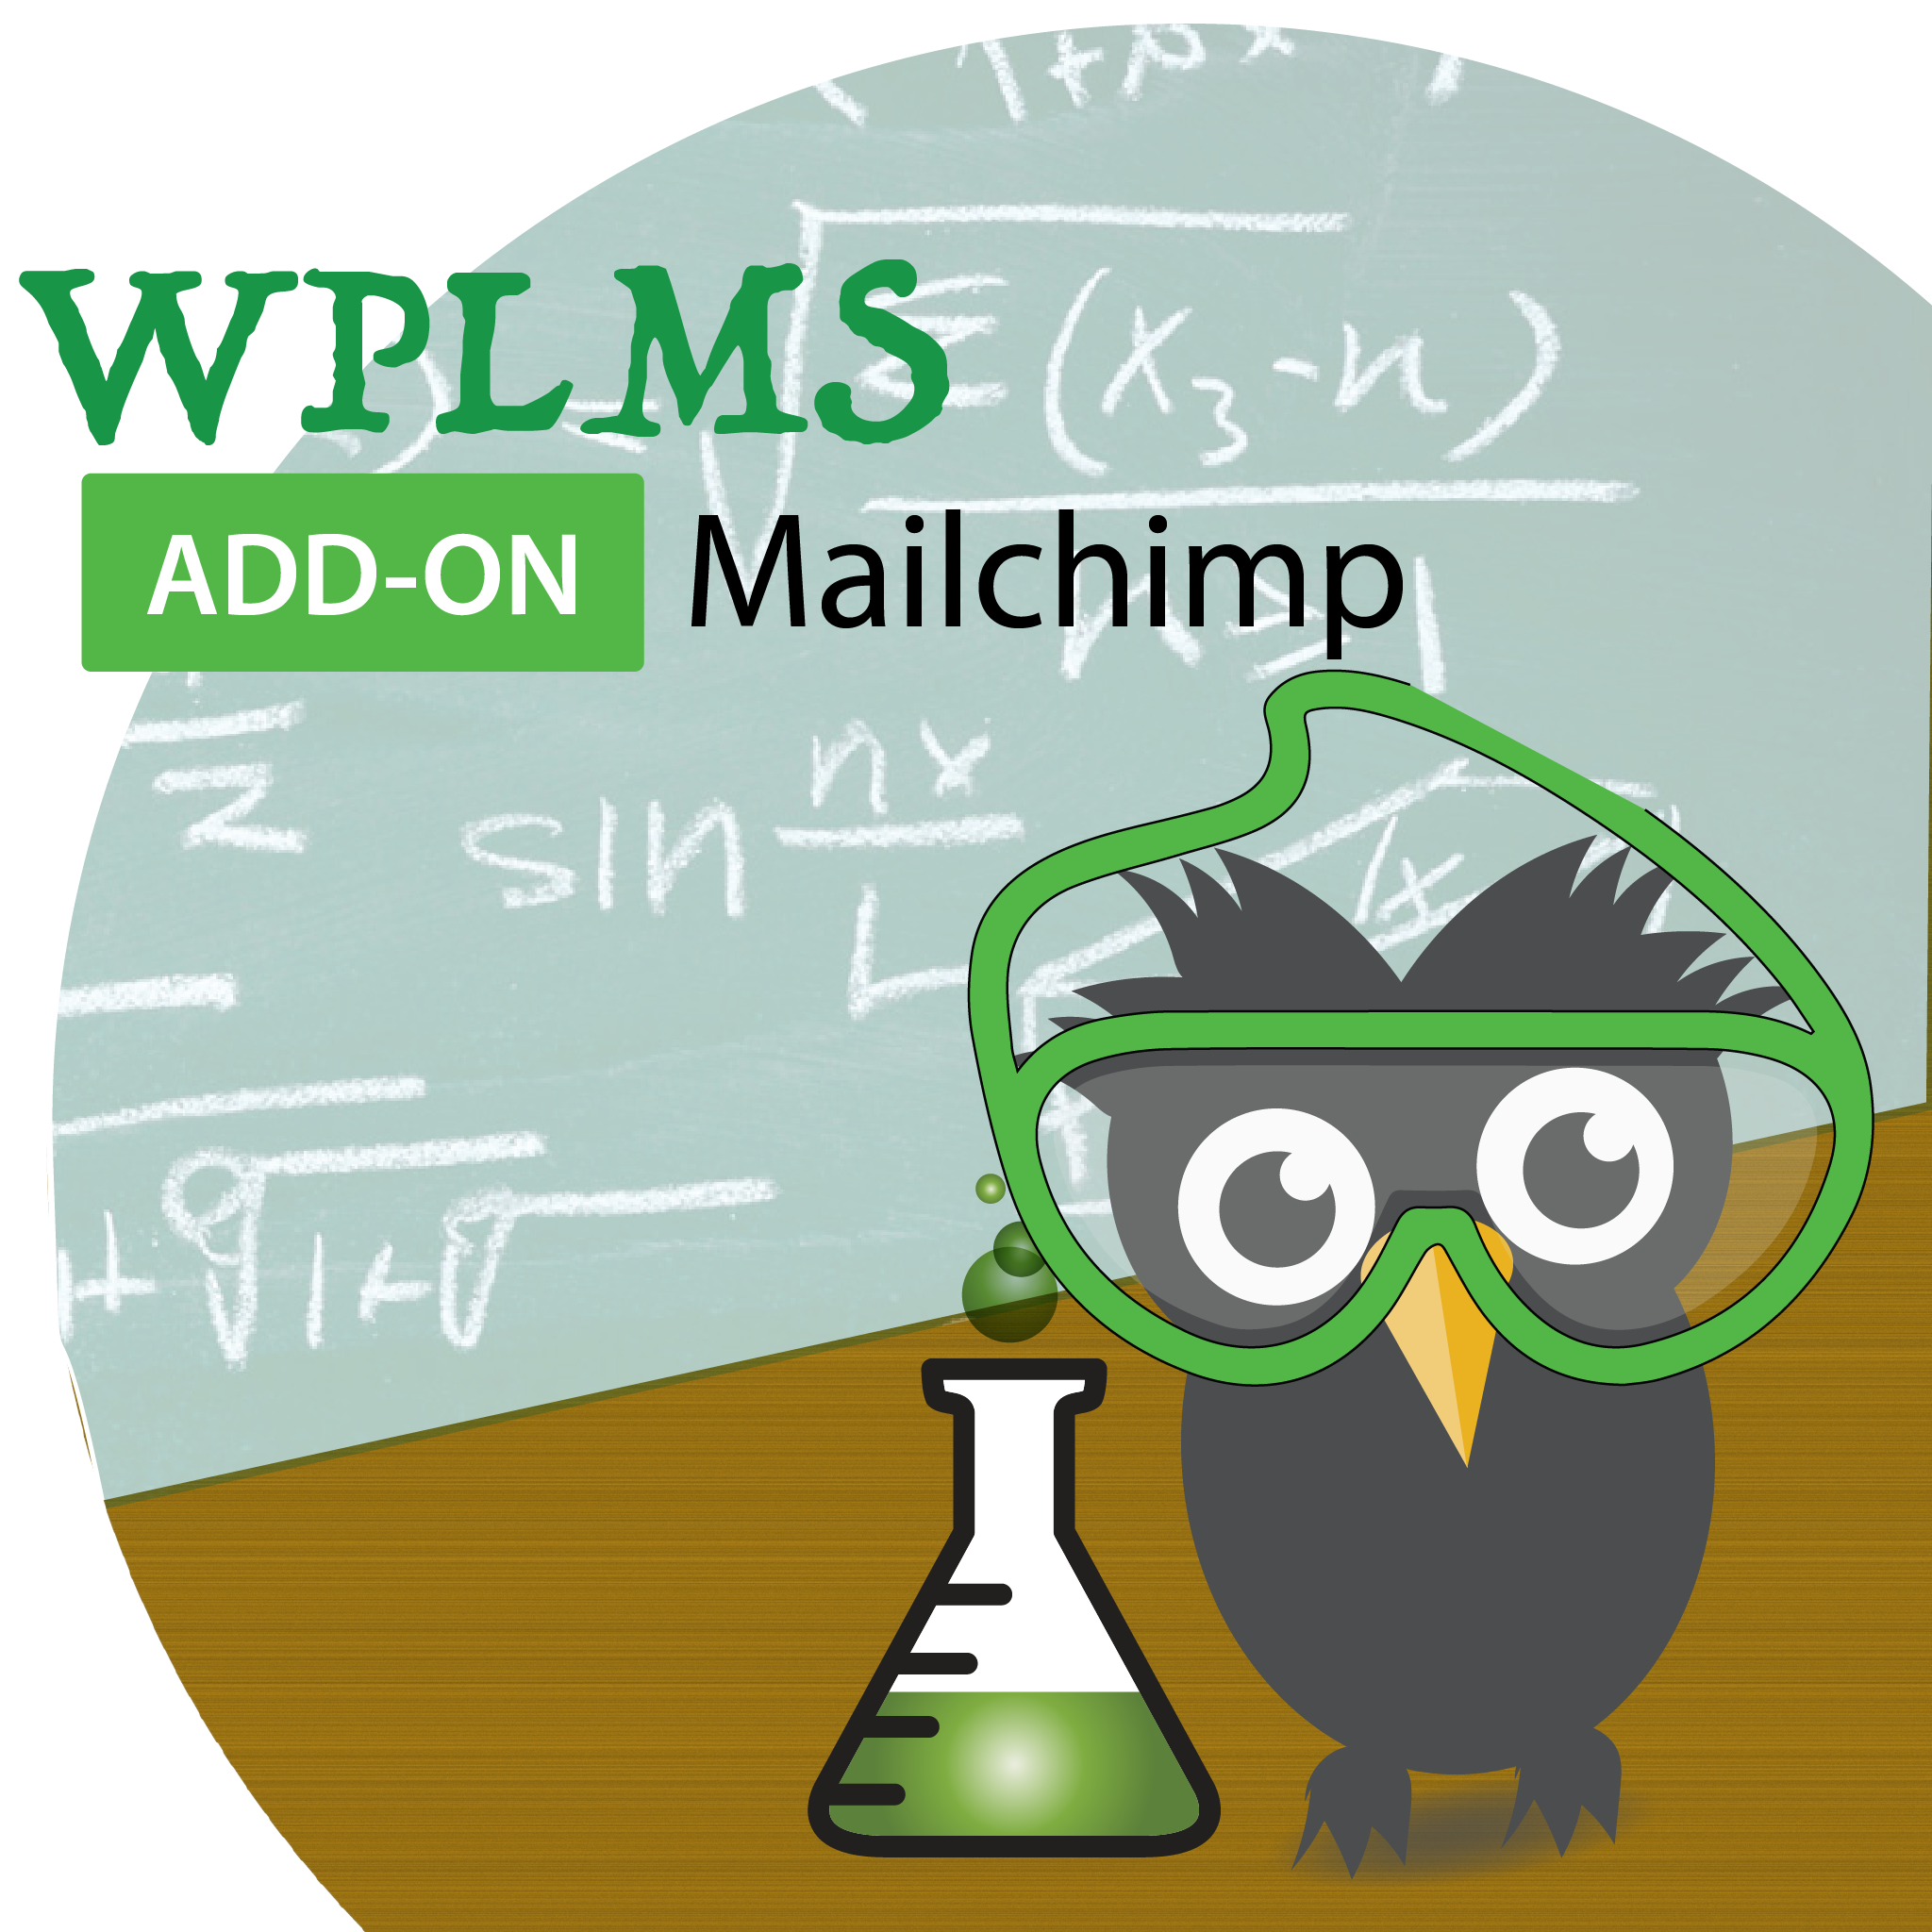 WPLMS MailChimp Add-On